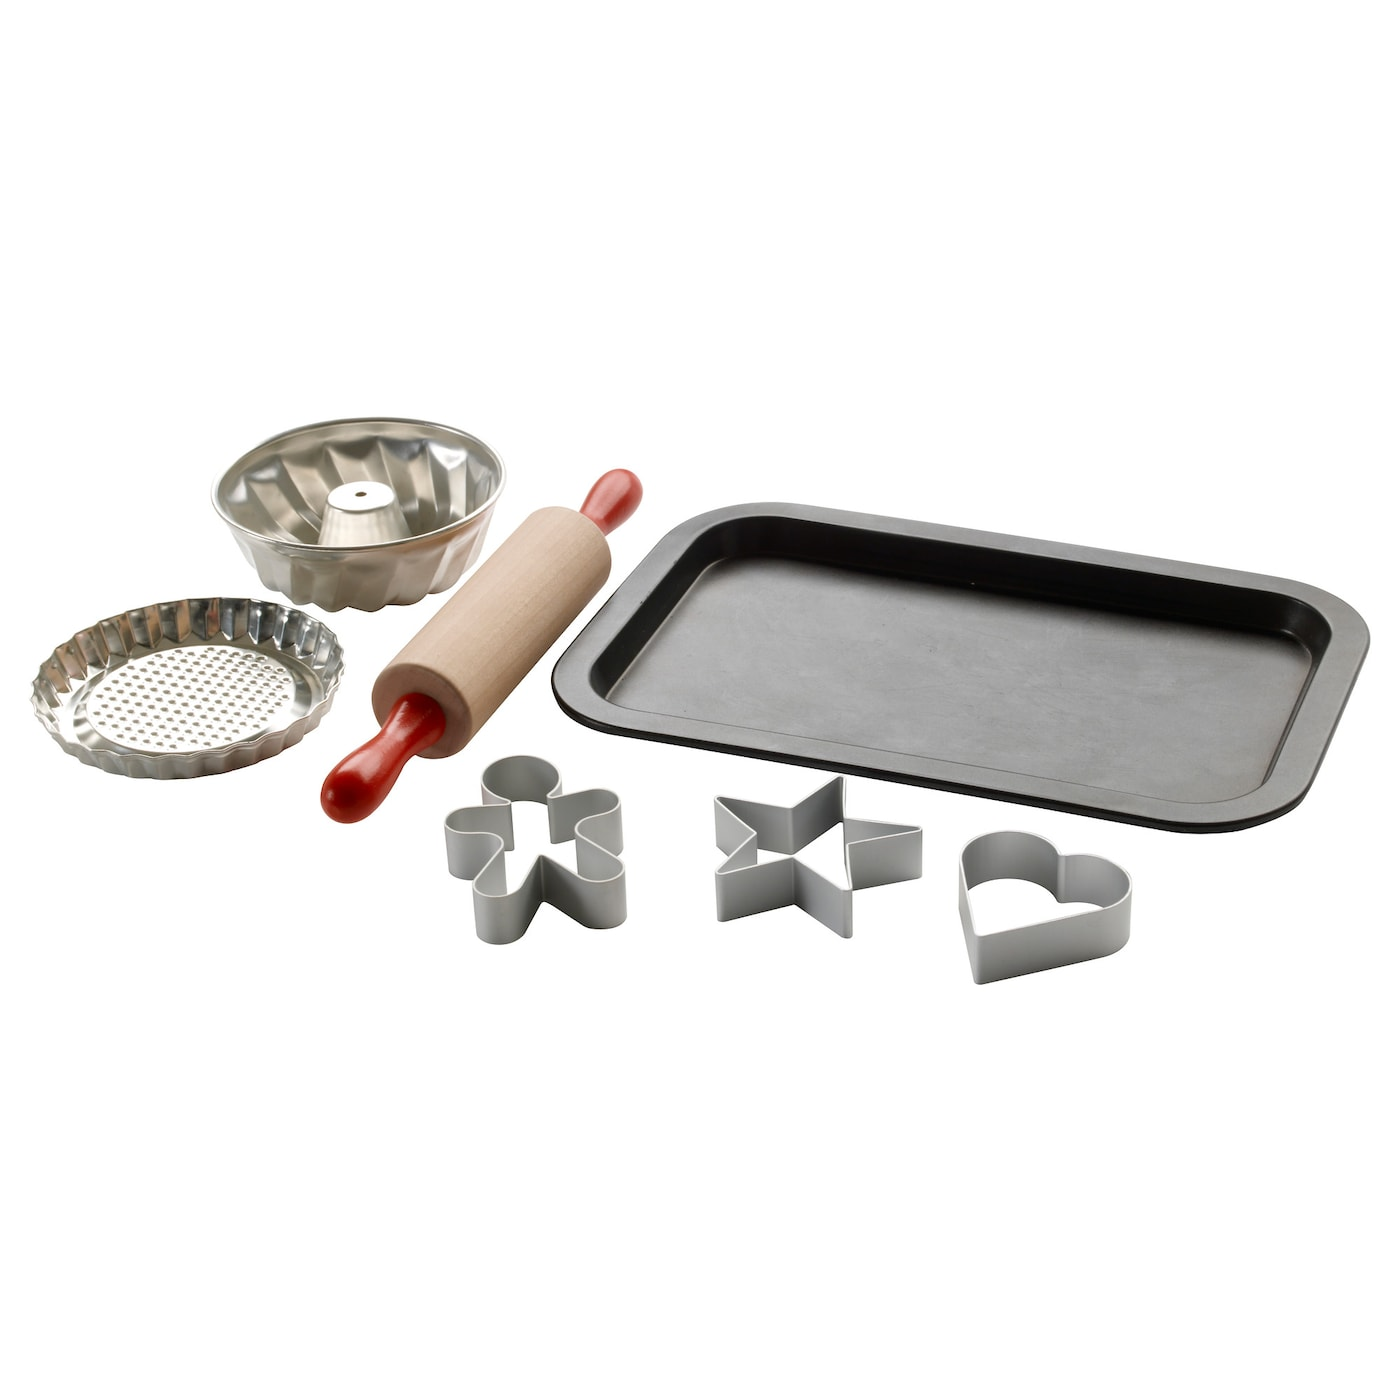 IKEA DUKTIG 7-piece toy baking set